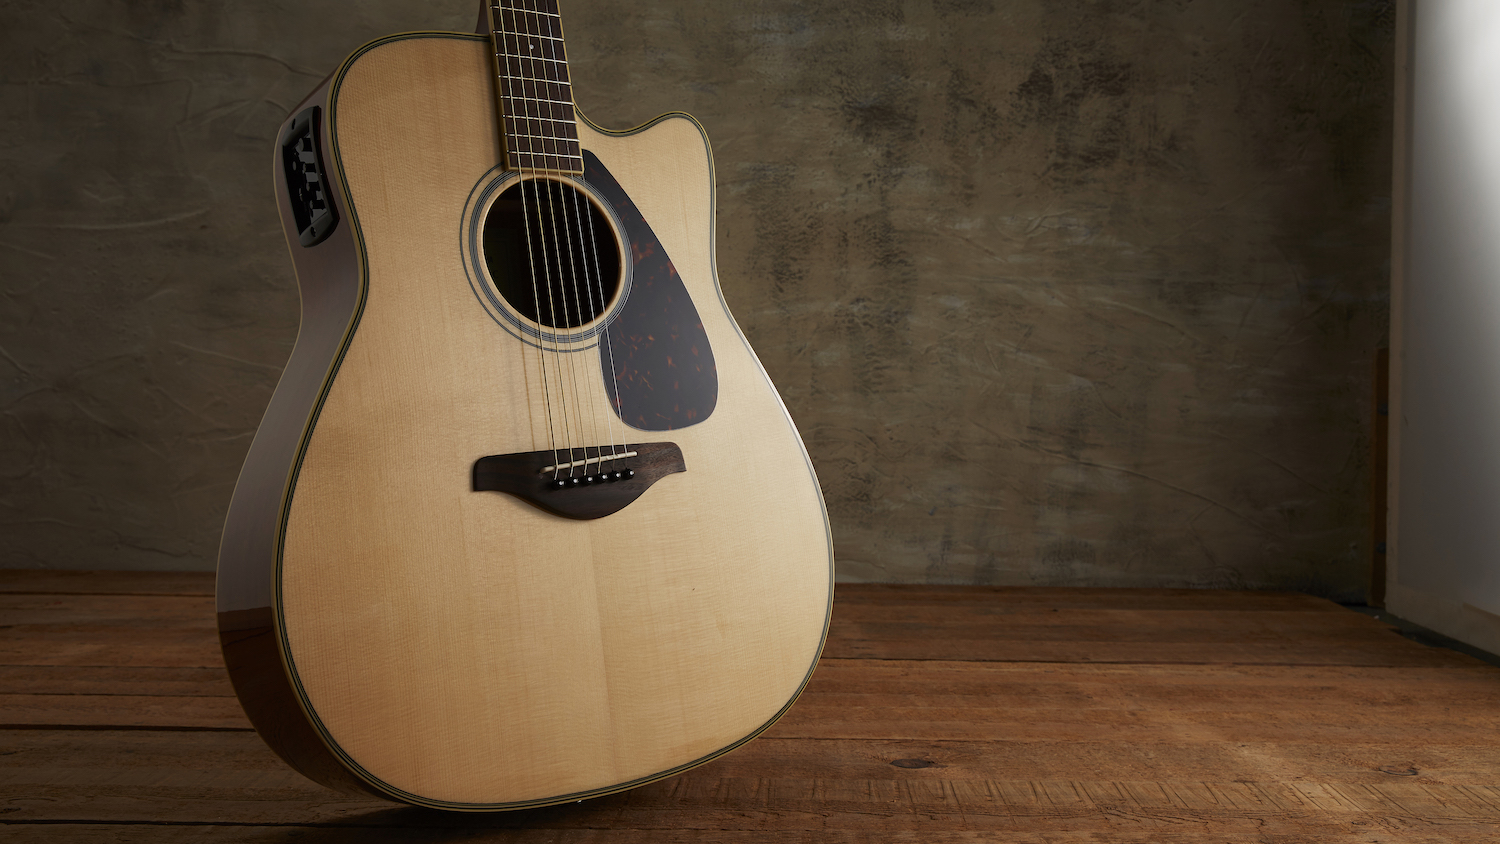 Best Acoustic Electric Guitars 2021 Budget To High End Guitars From Epiphone Martin Taylor And More Musicradar